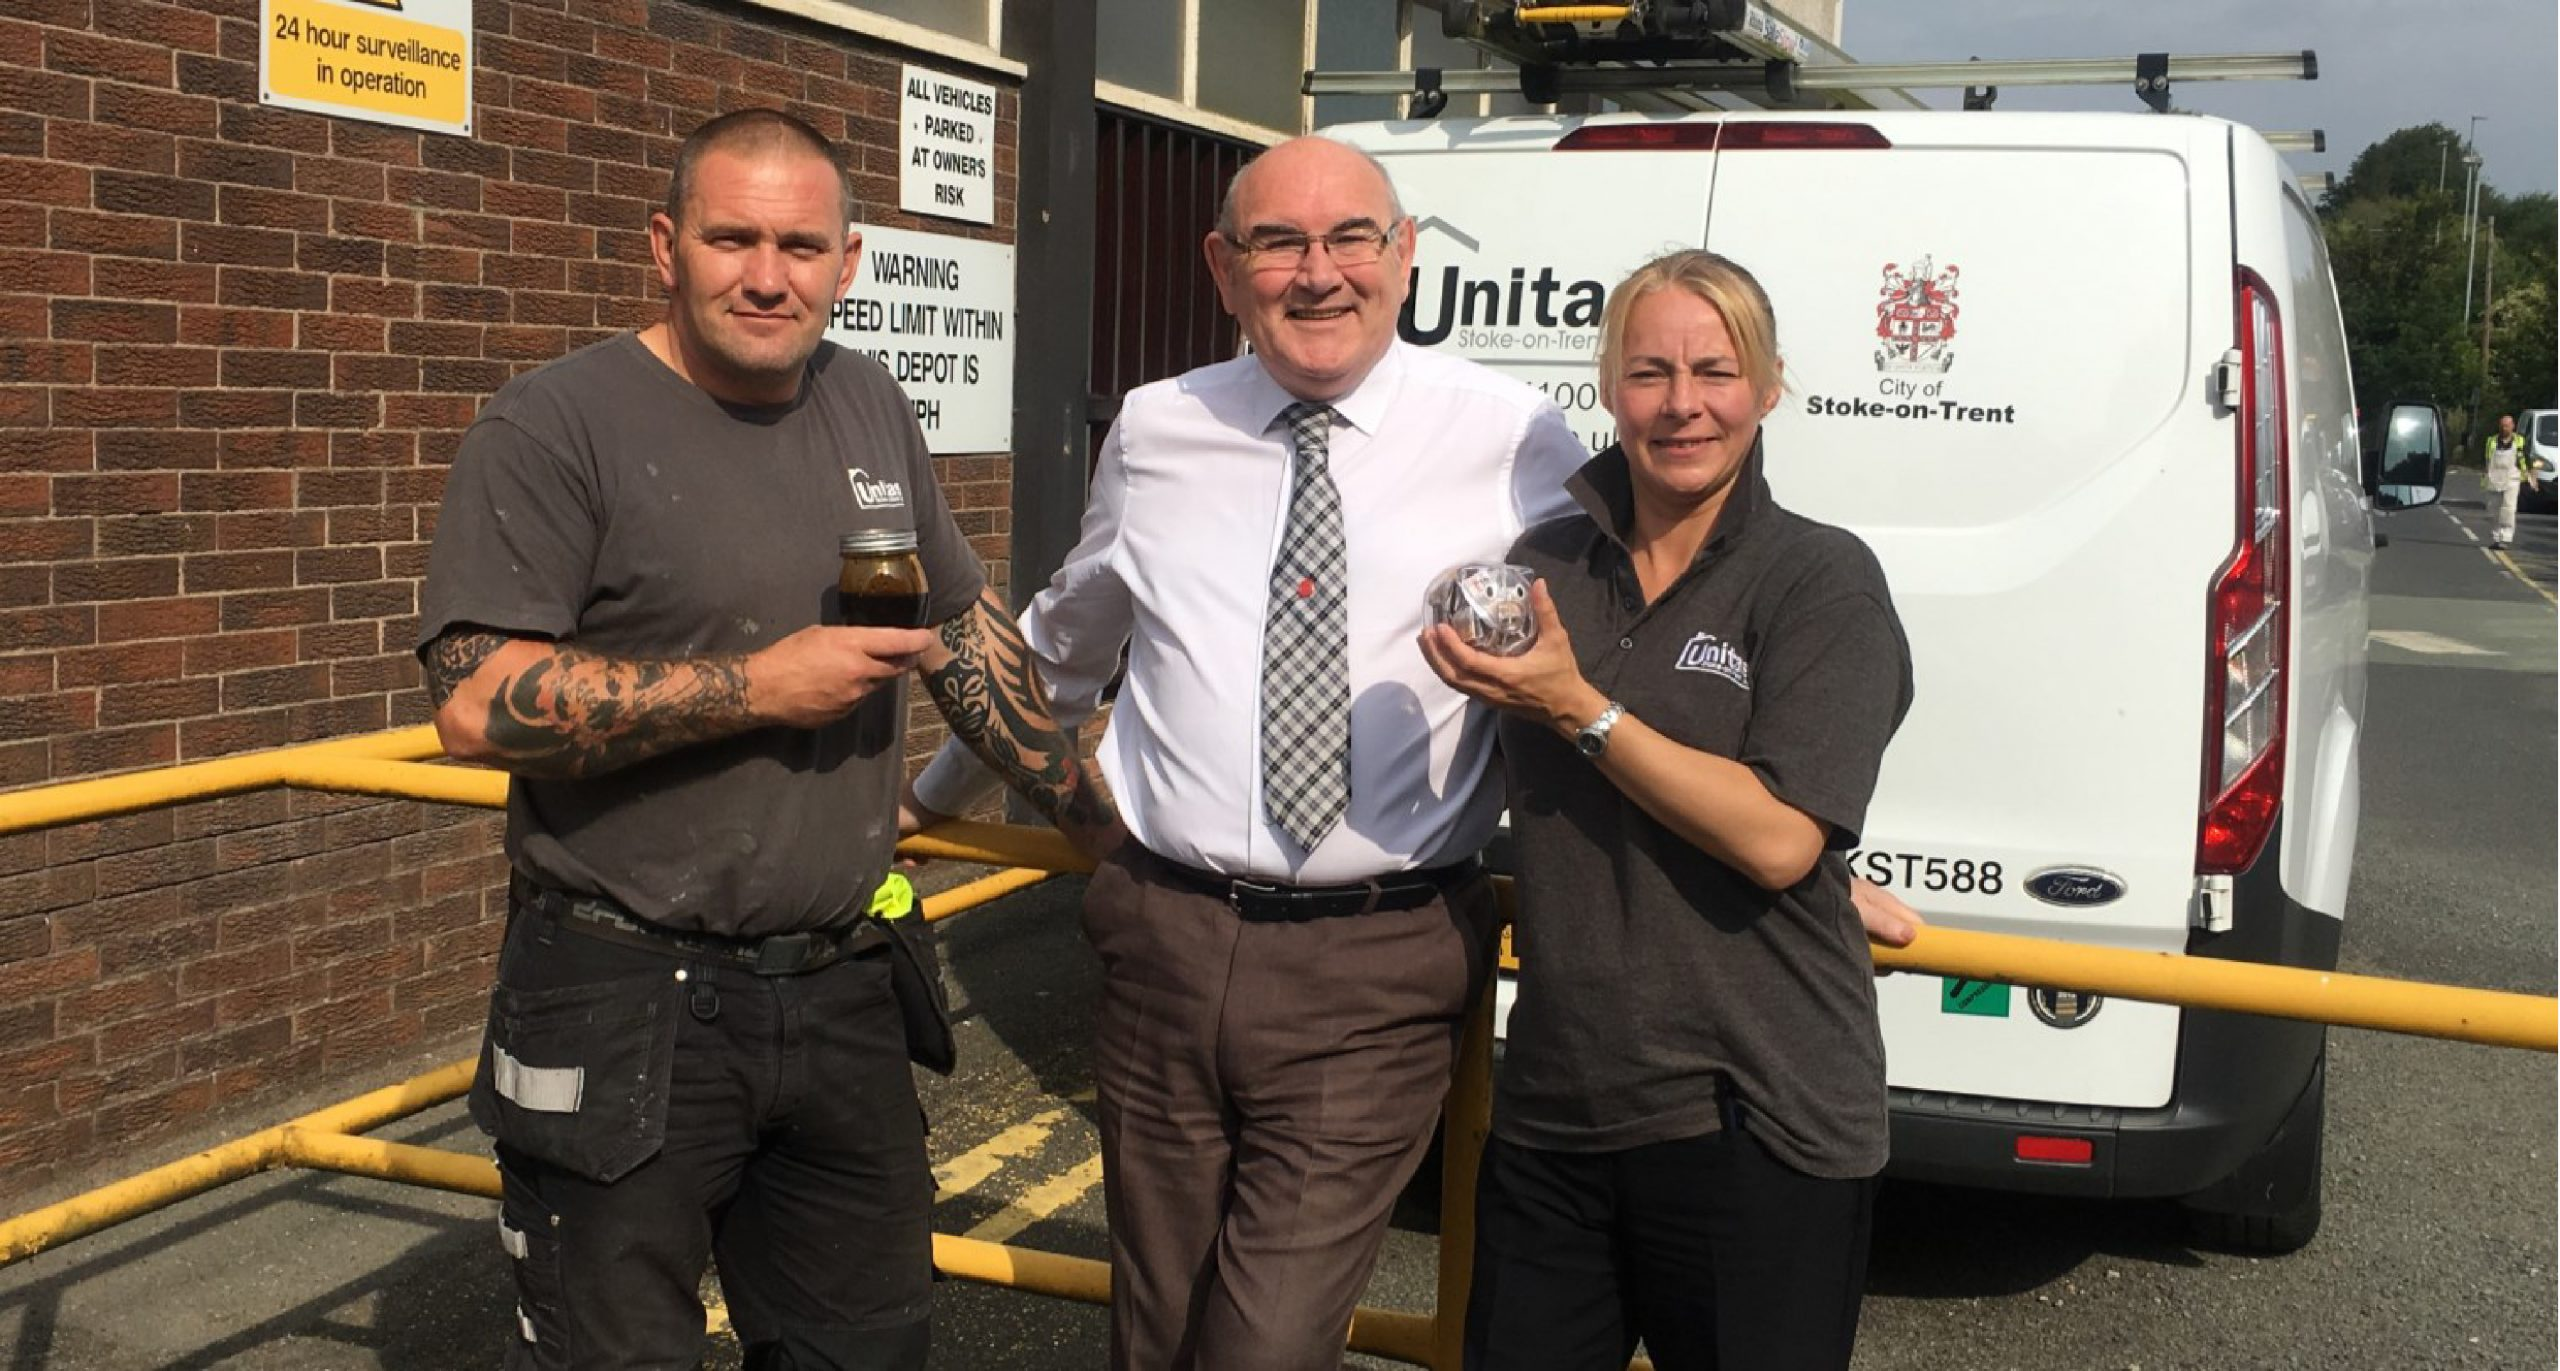 Health and wellbeing initiative helps Unitas staff quit smoking